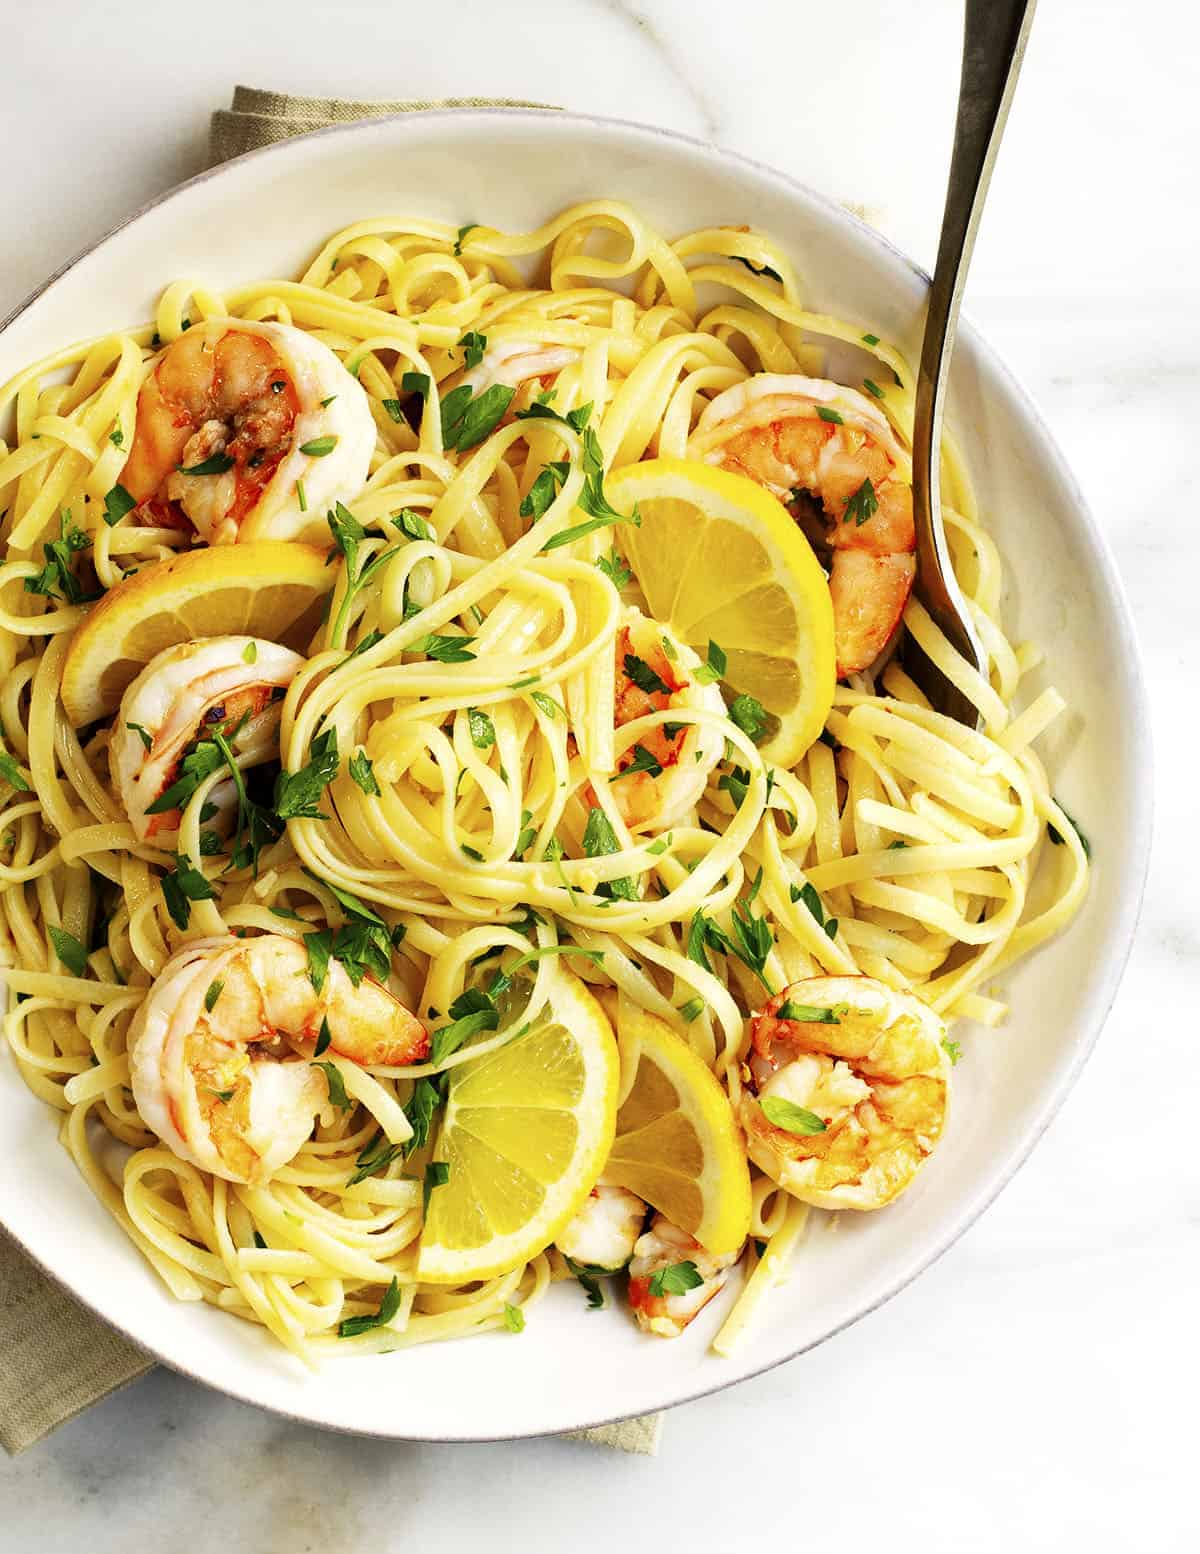 Lemon Garlic Shrimp Pasta served in a white bowl